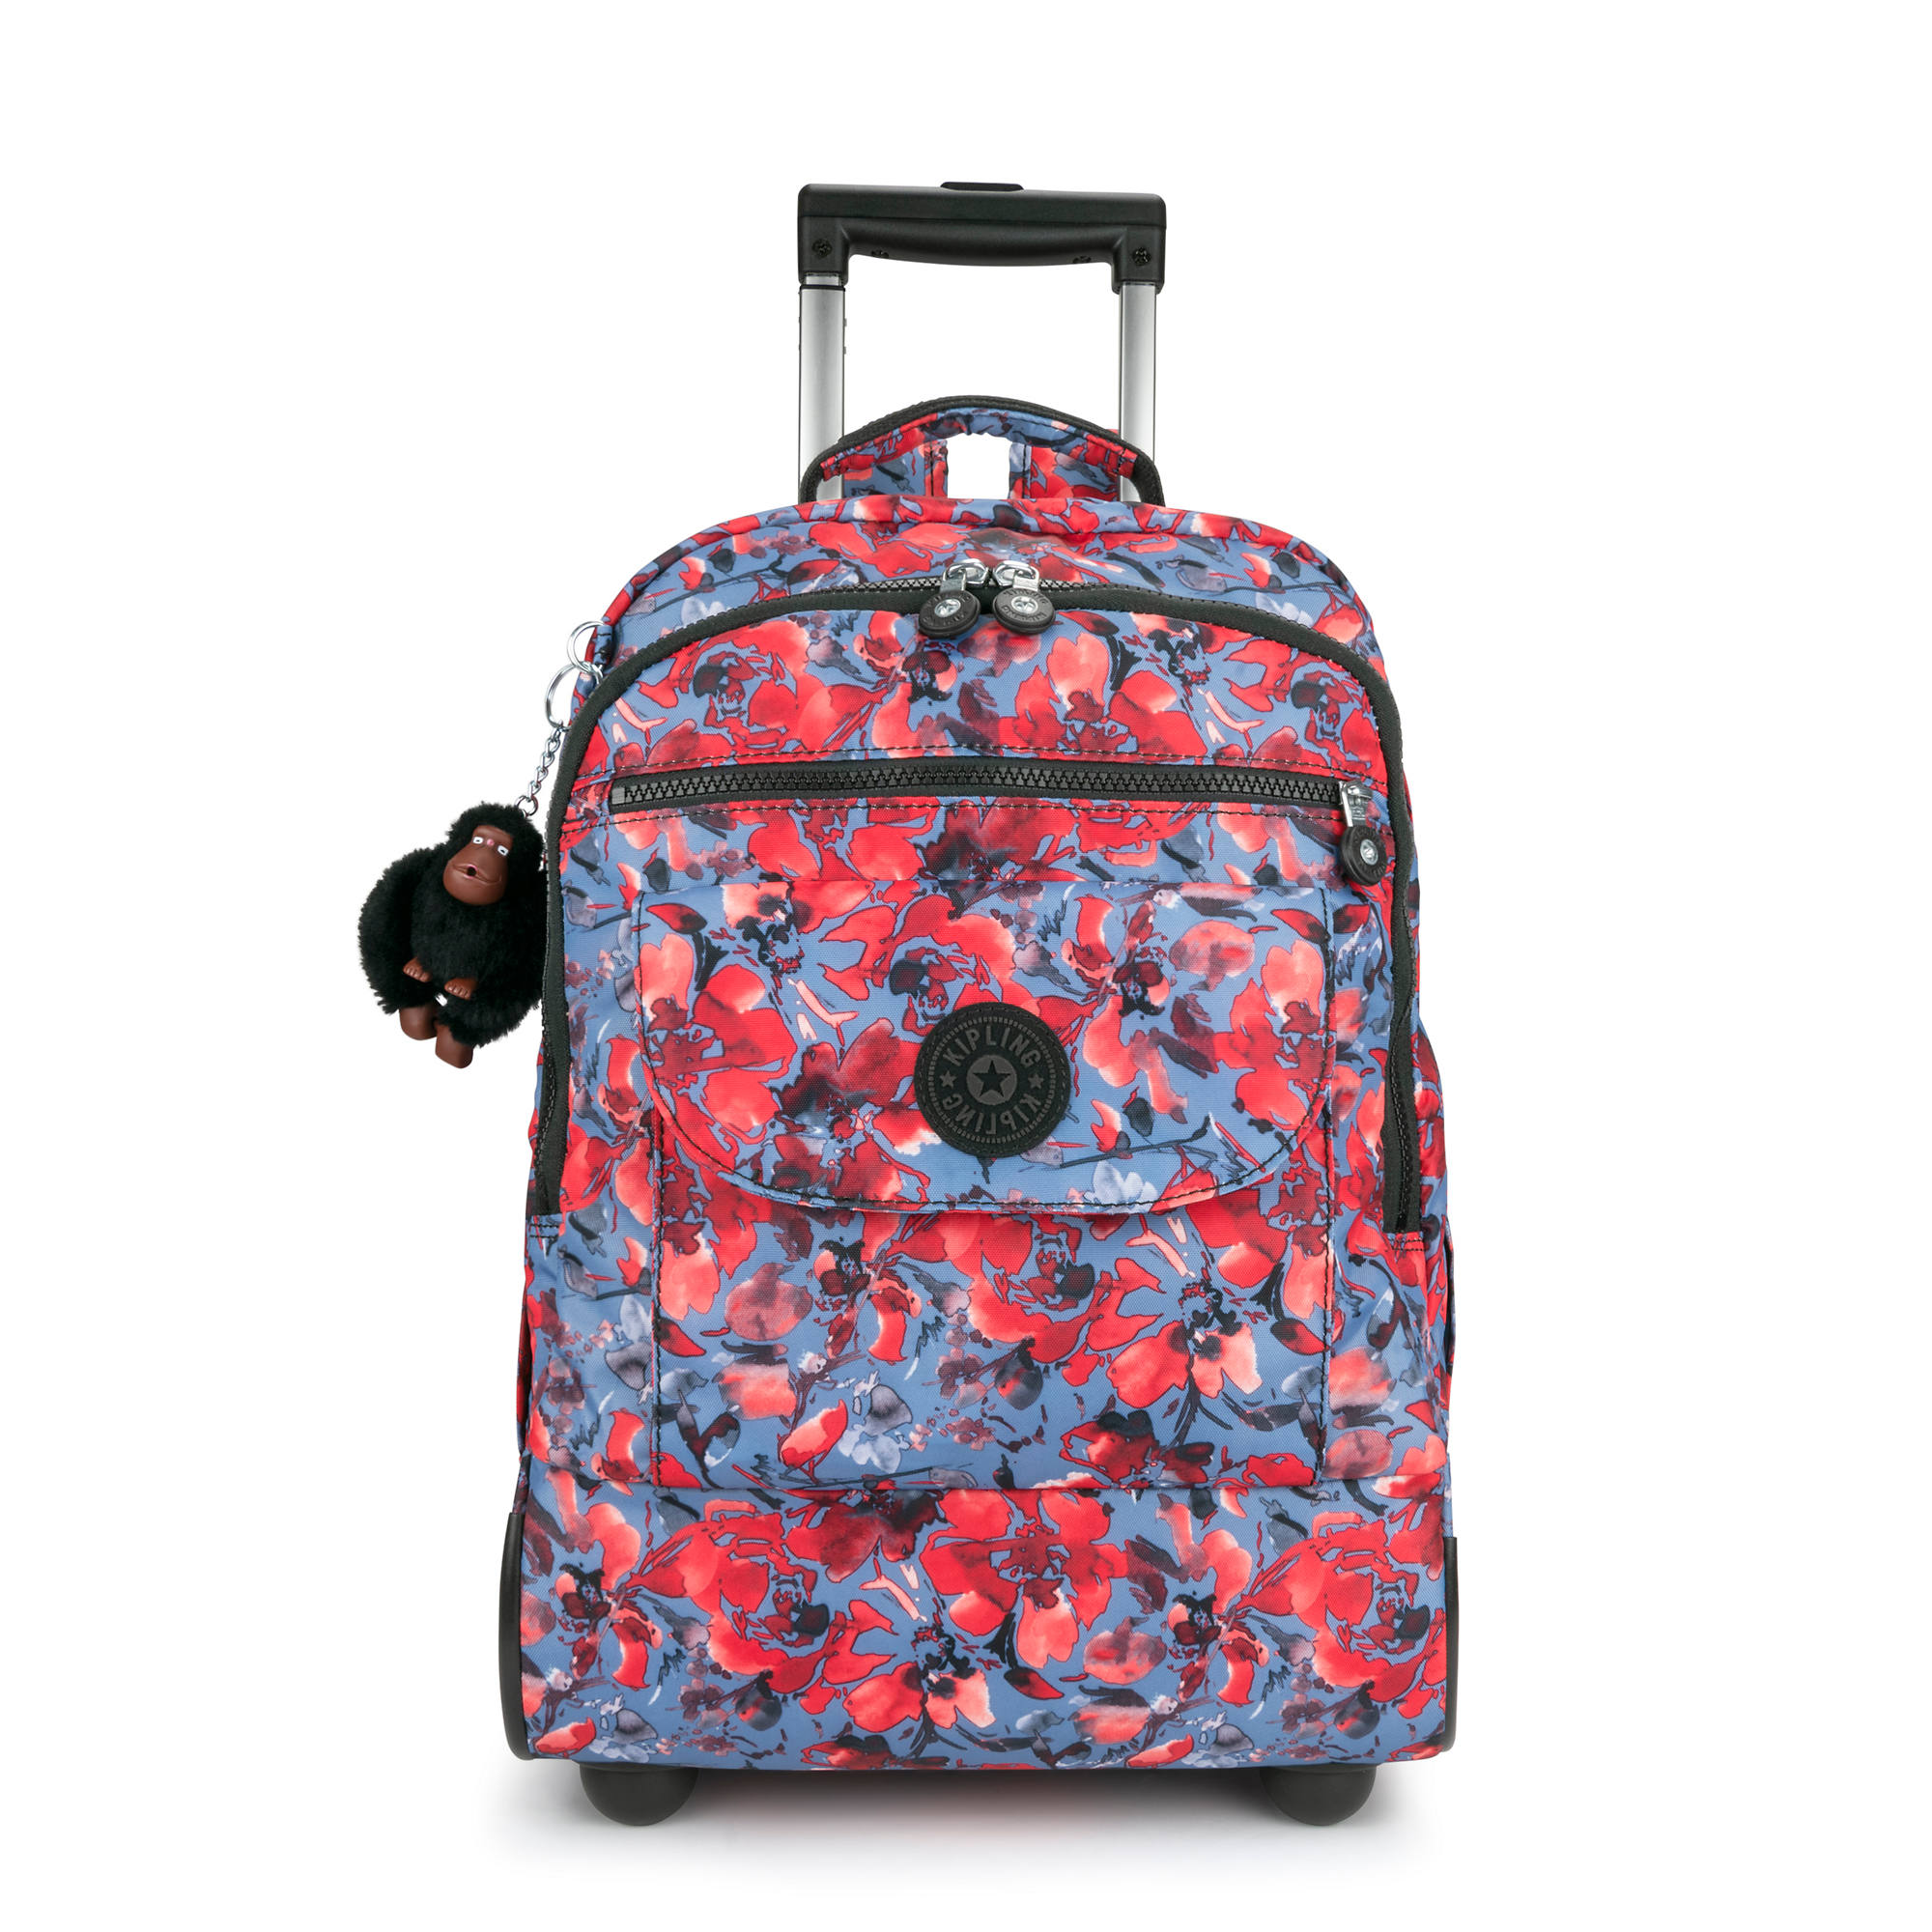 Sanaa Large Printed Rolling Backpack  b8206b67e02b5